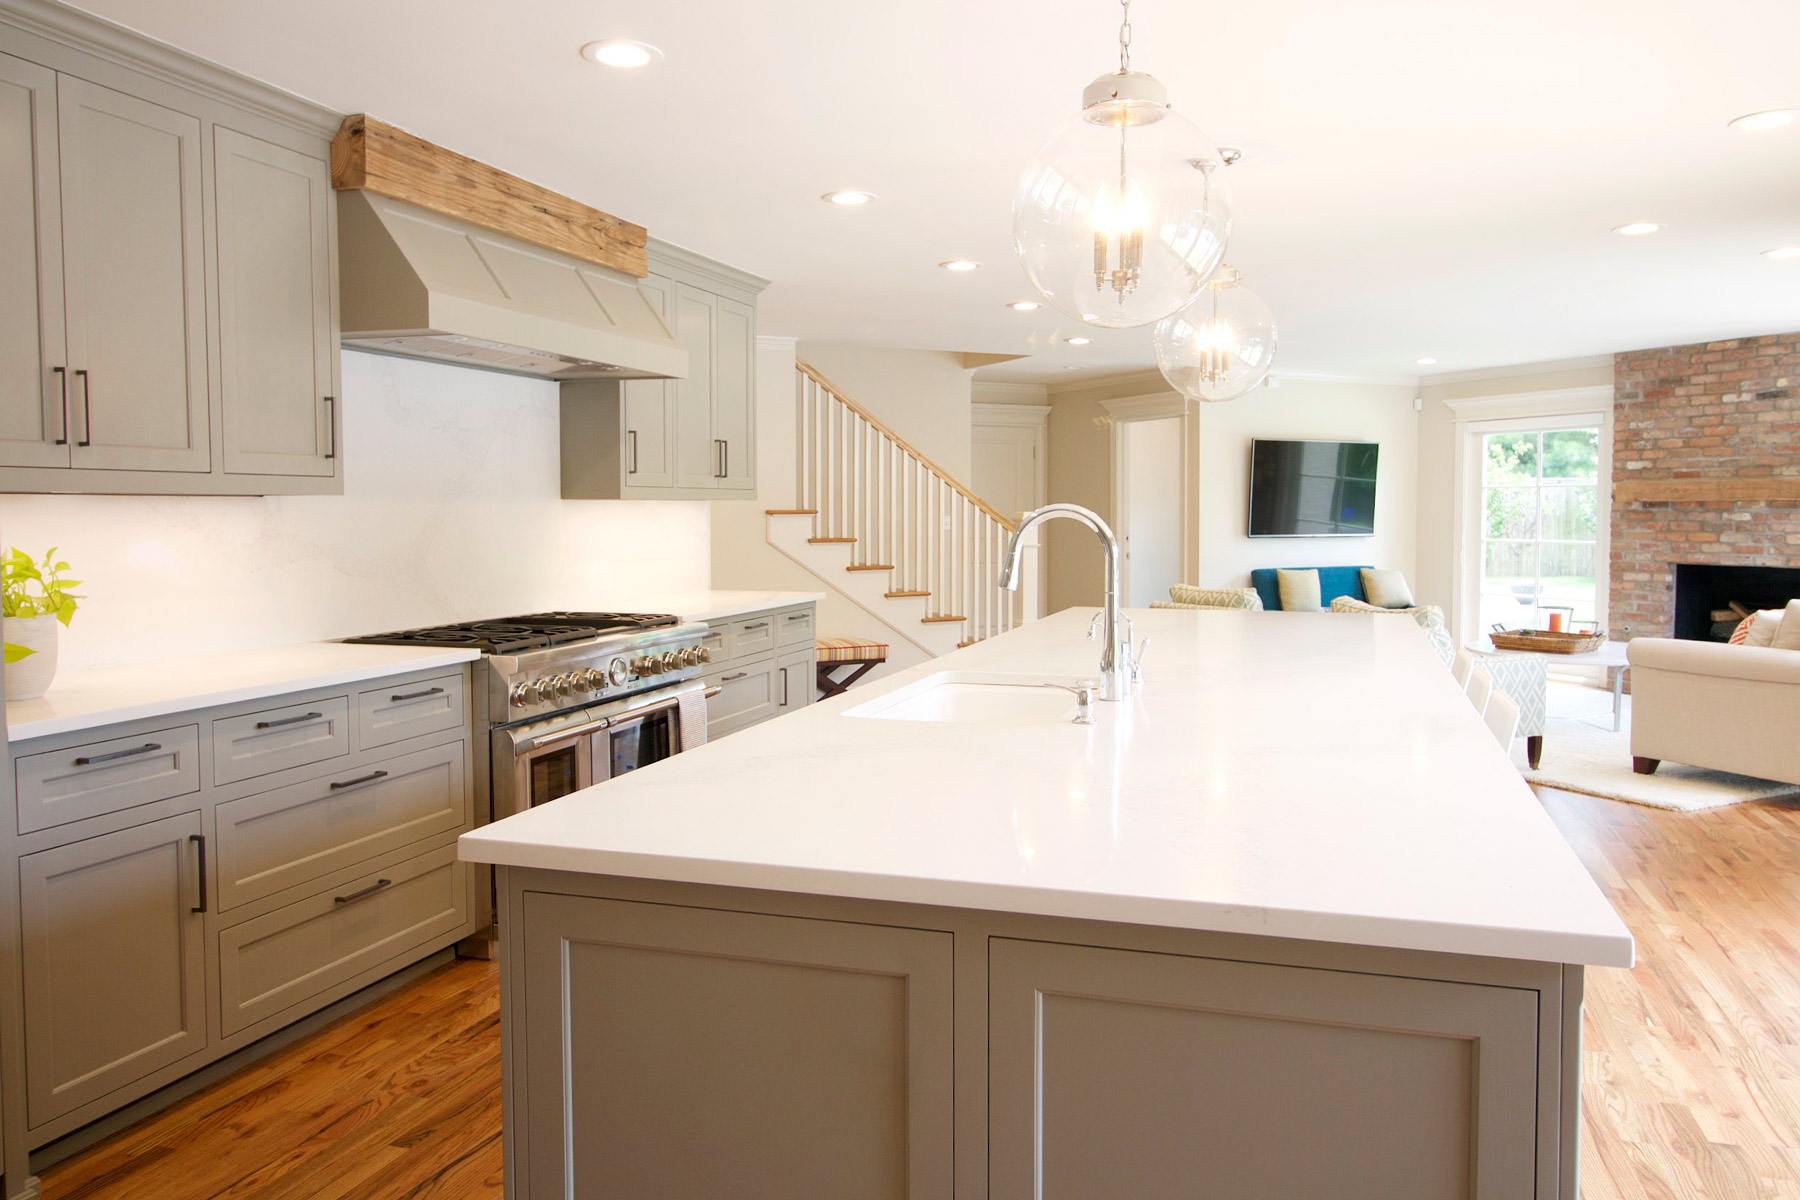 Midtown tulsa home renovation home innovations for Kitchen cabinets tulsa